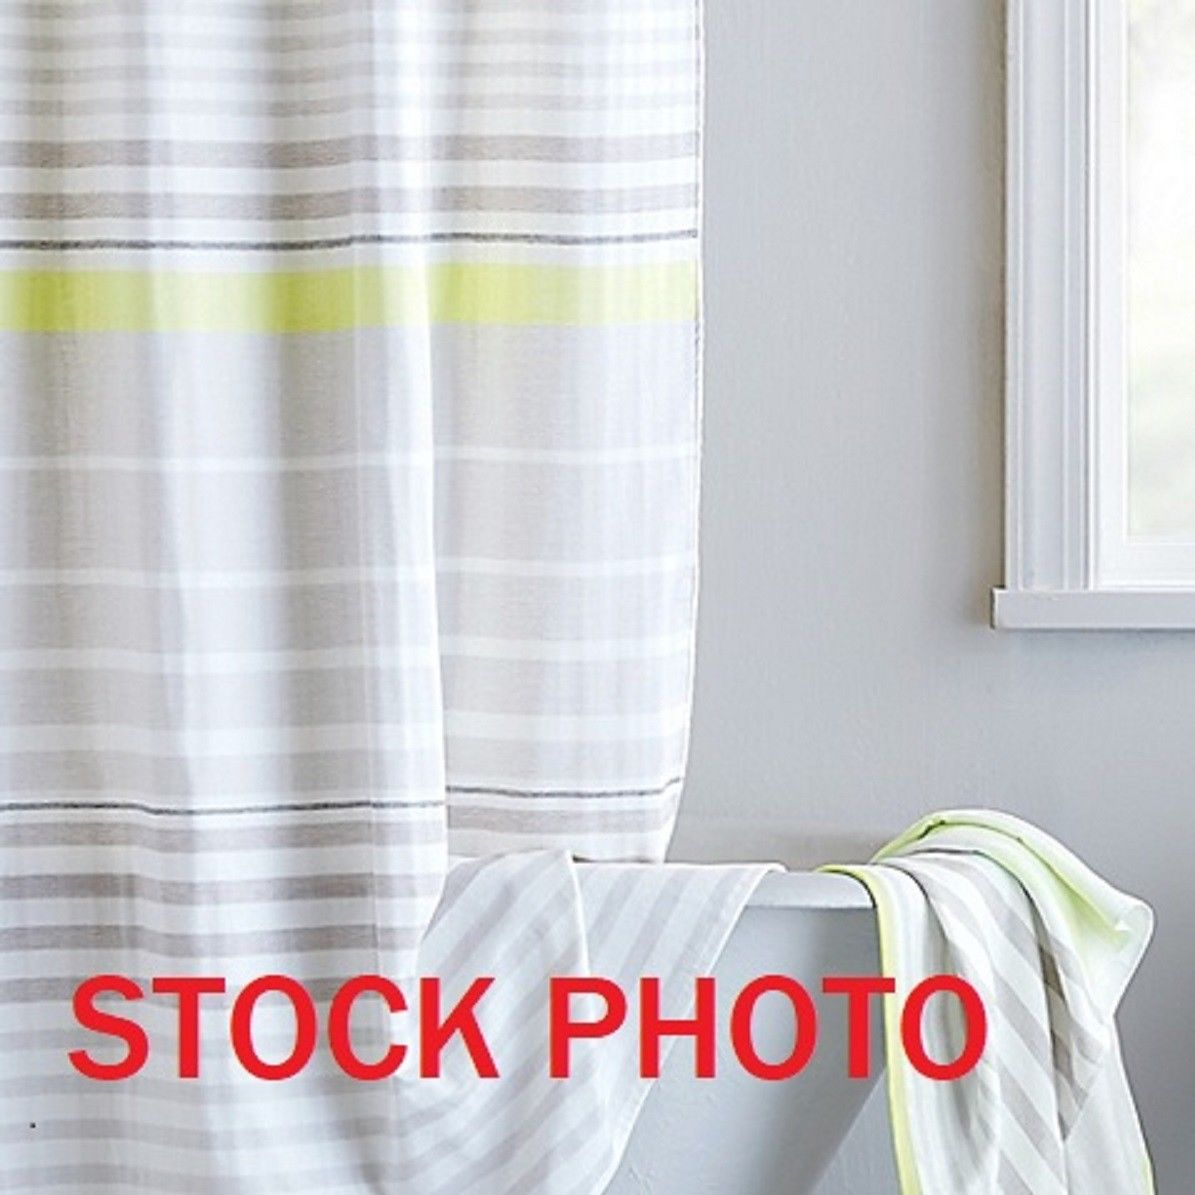 Dkny Streetscape Citron Fabric Shower Curtain White Charcoal Tan With Size  1195 X 1195